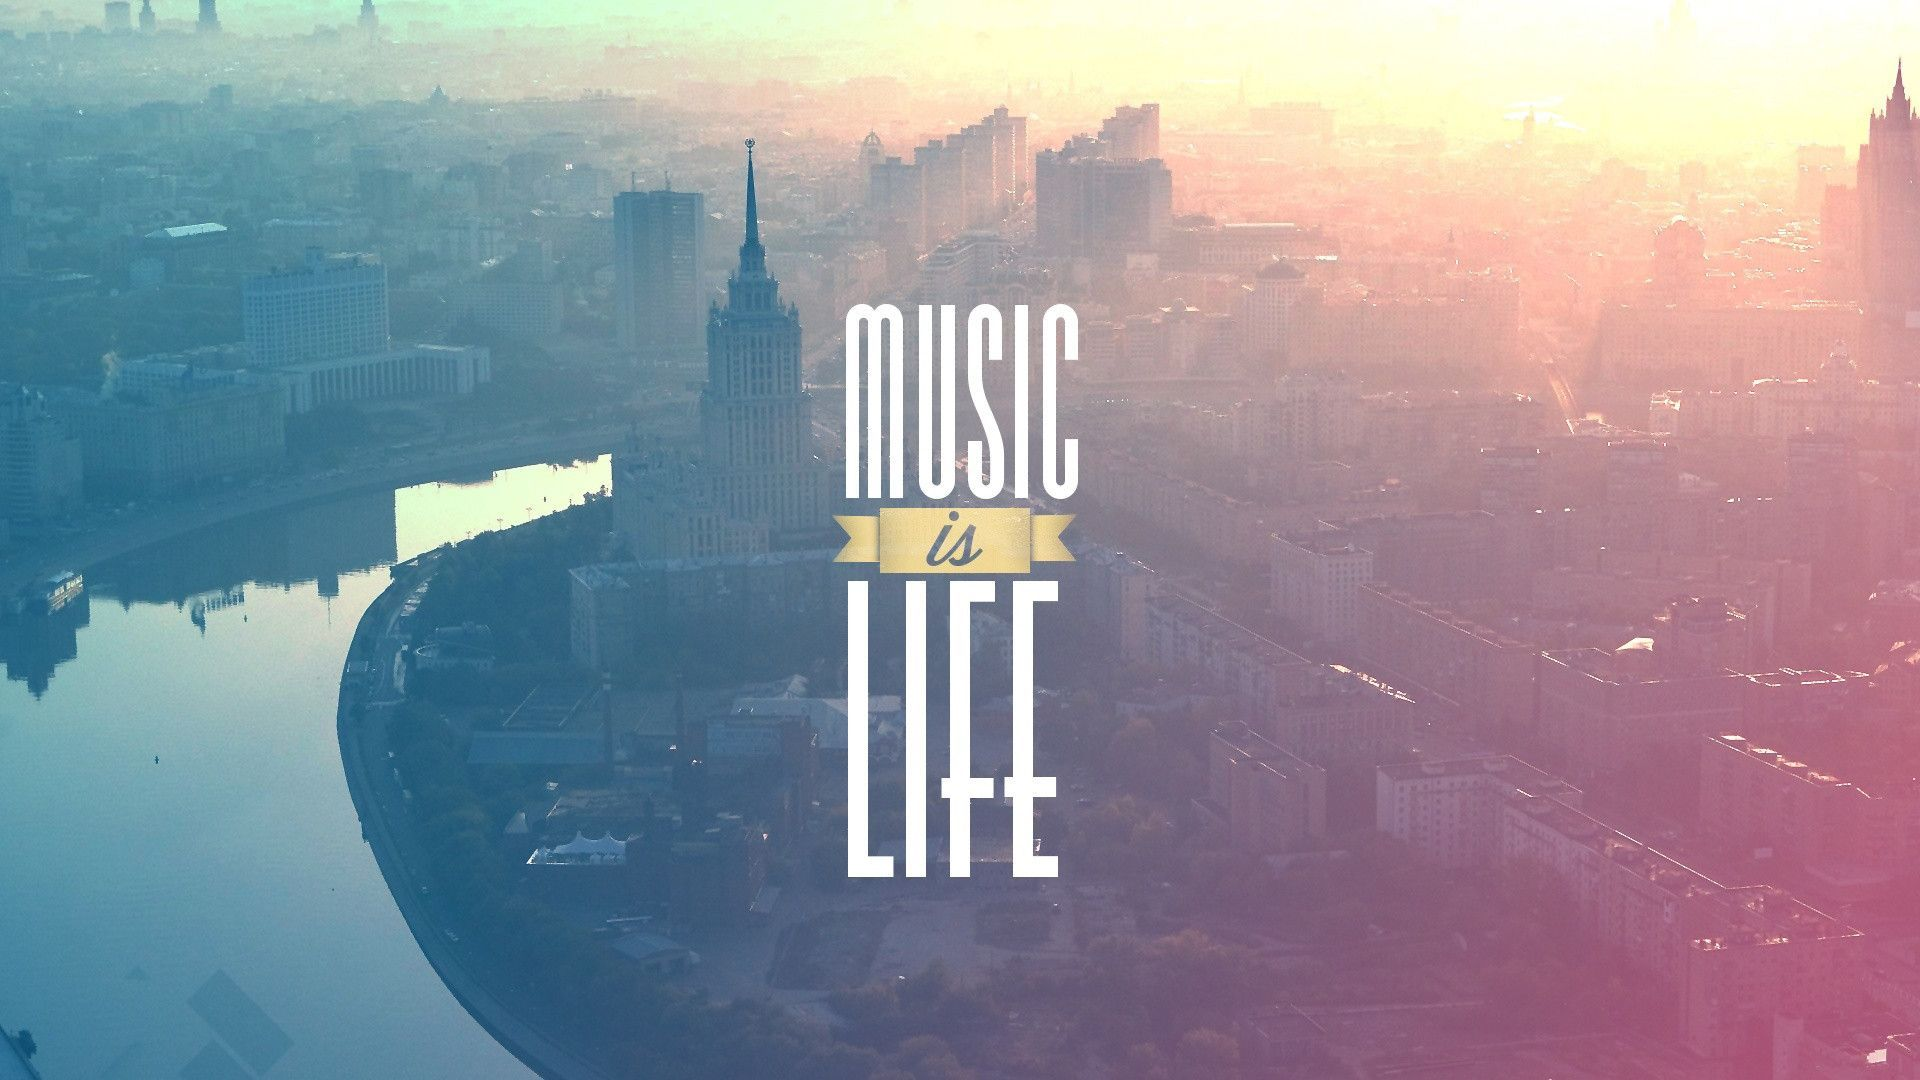 1920x1080 music is life wallpaper in 2019 music wallpaper computer wallpaper music is life - Music is life hd ...